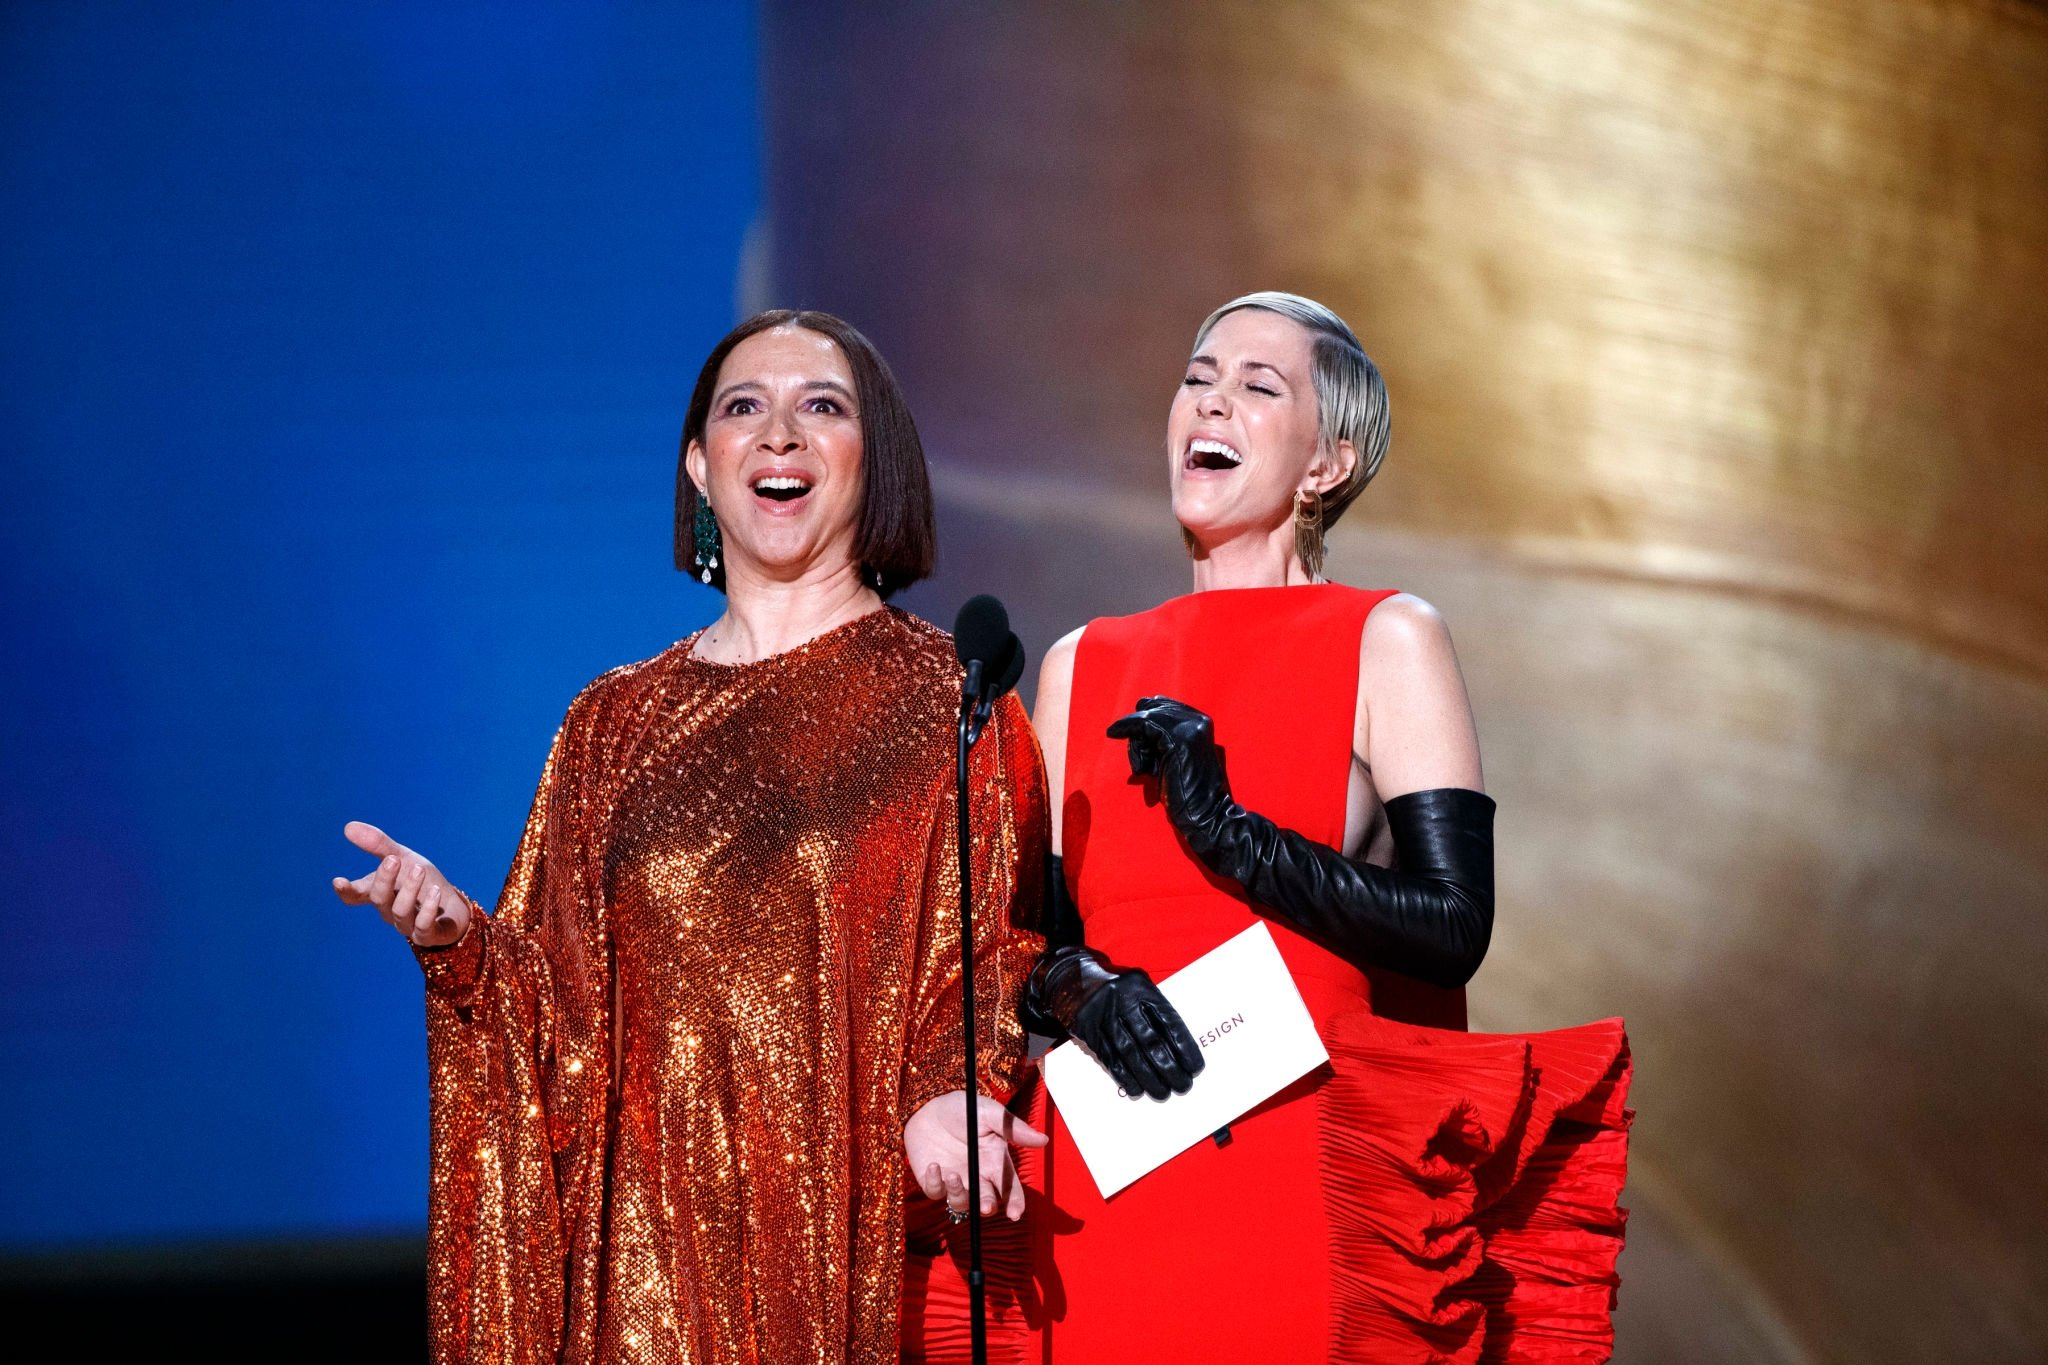 Video Clips of Kristen Wiig at the Oscars